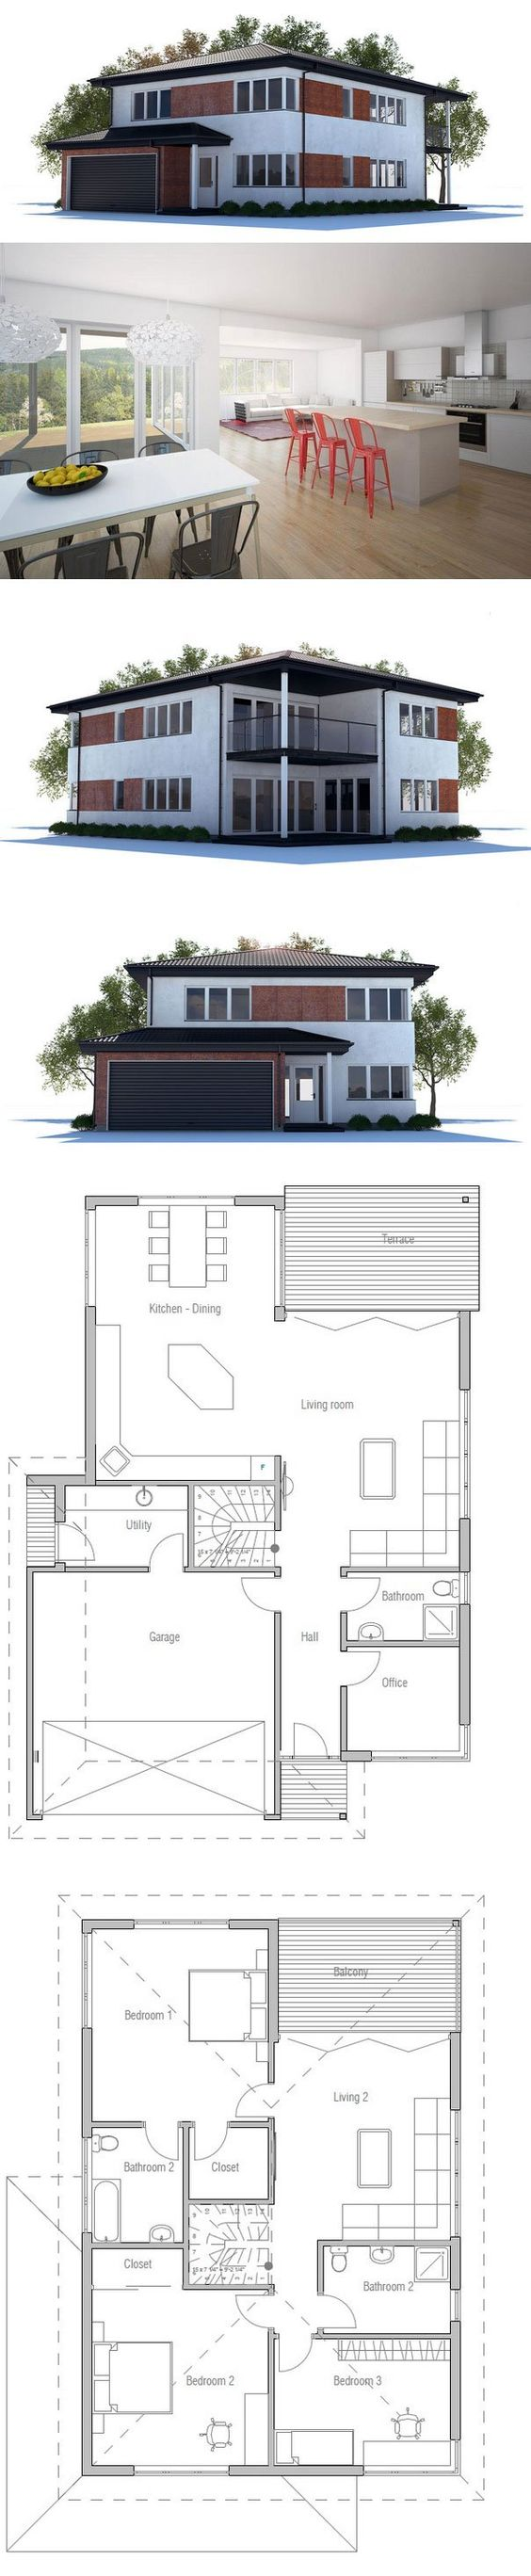 Modern House Plan With Large Covered Terrace And Balcony